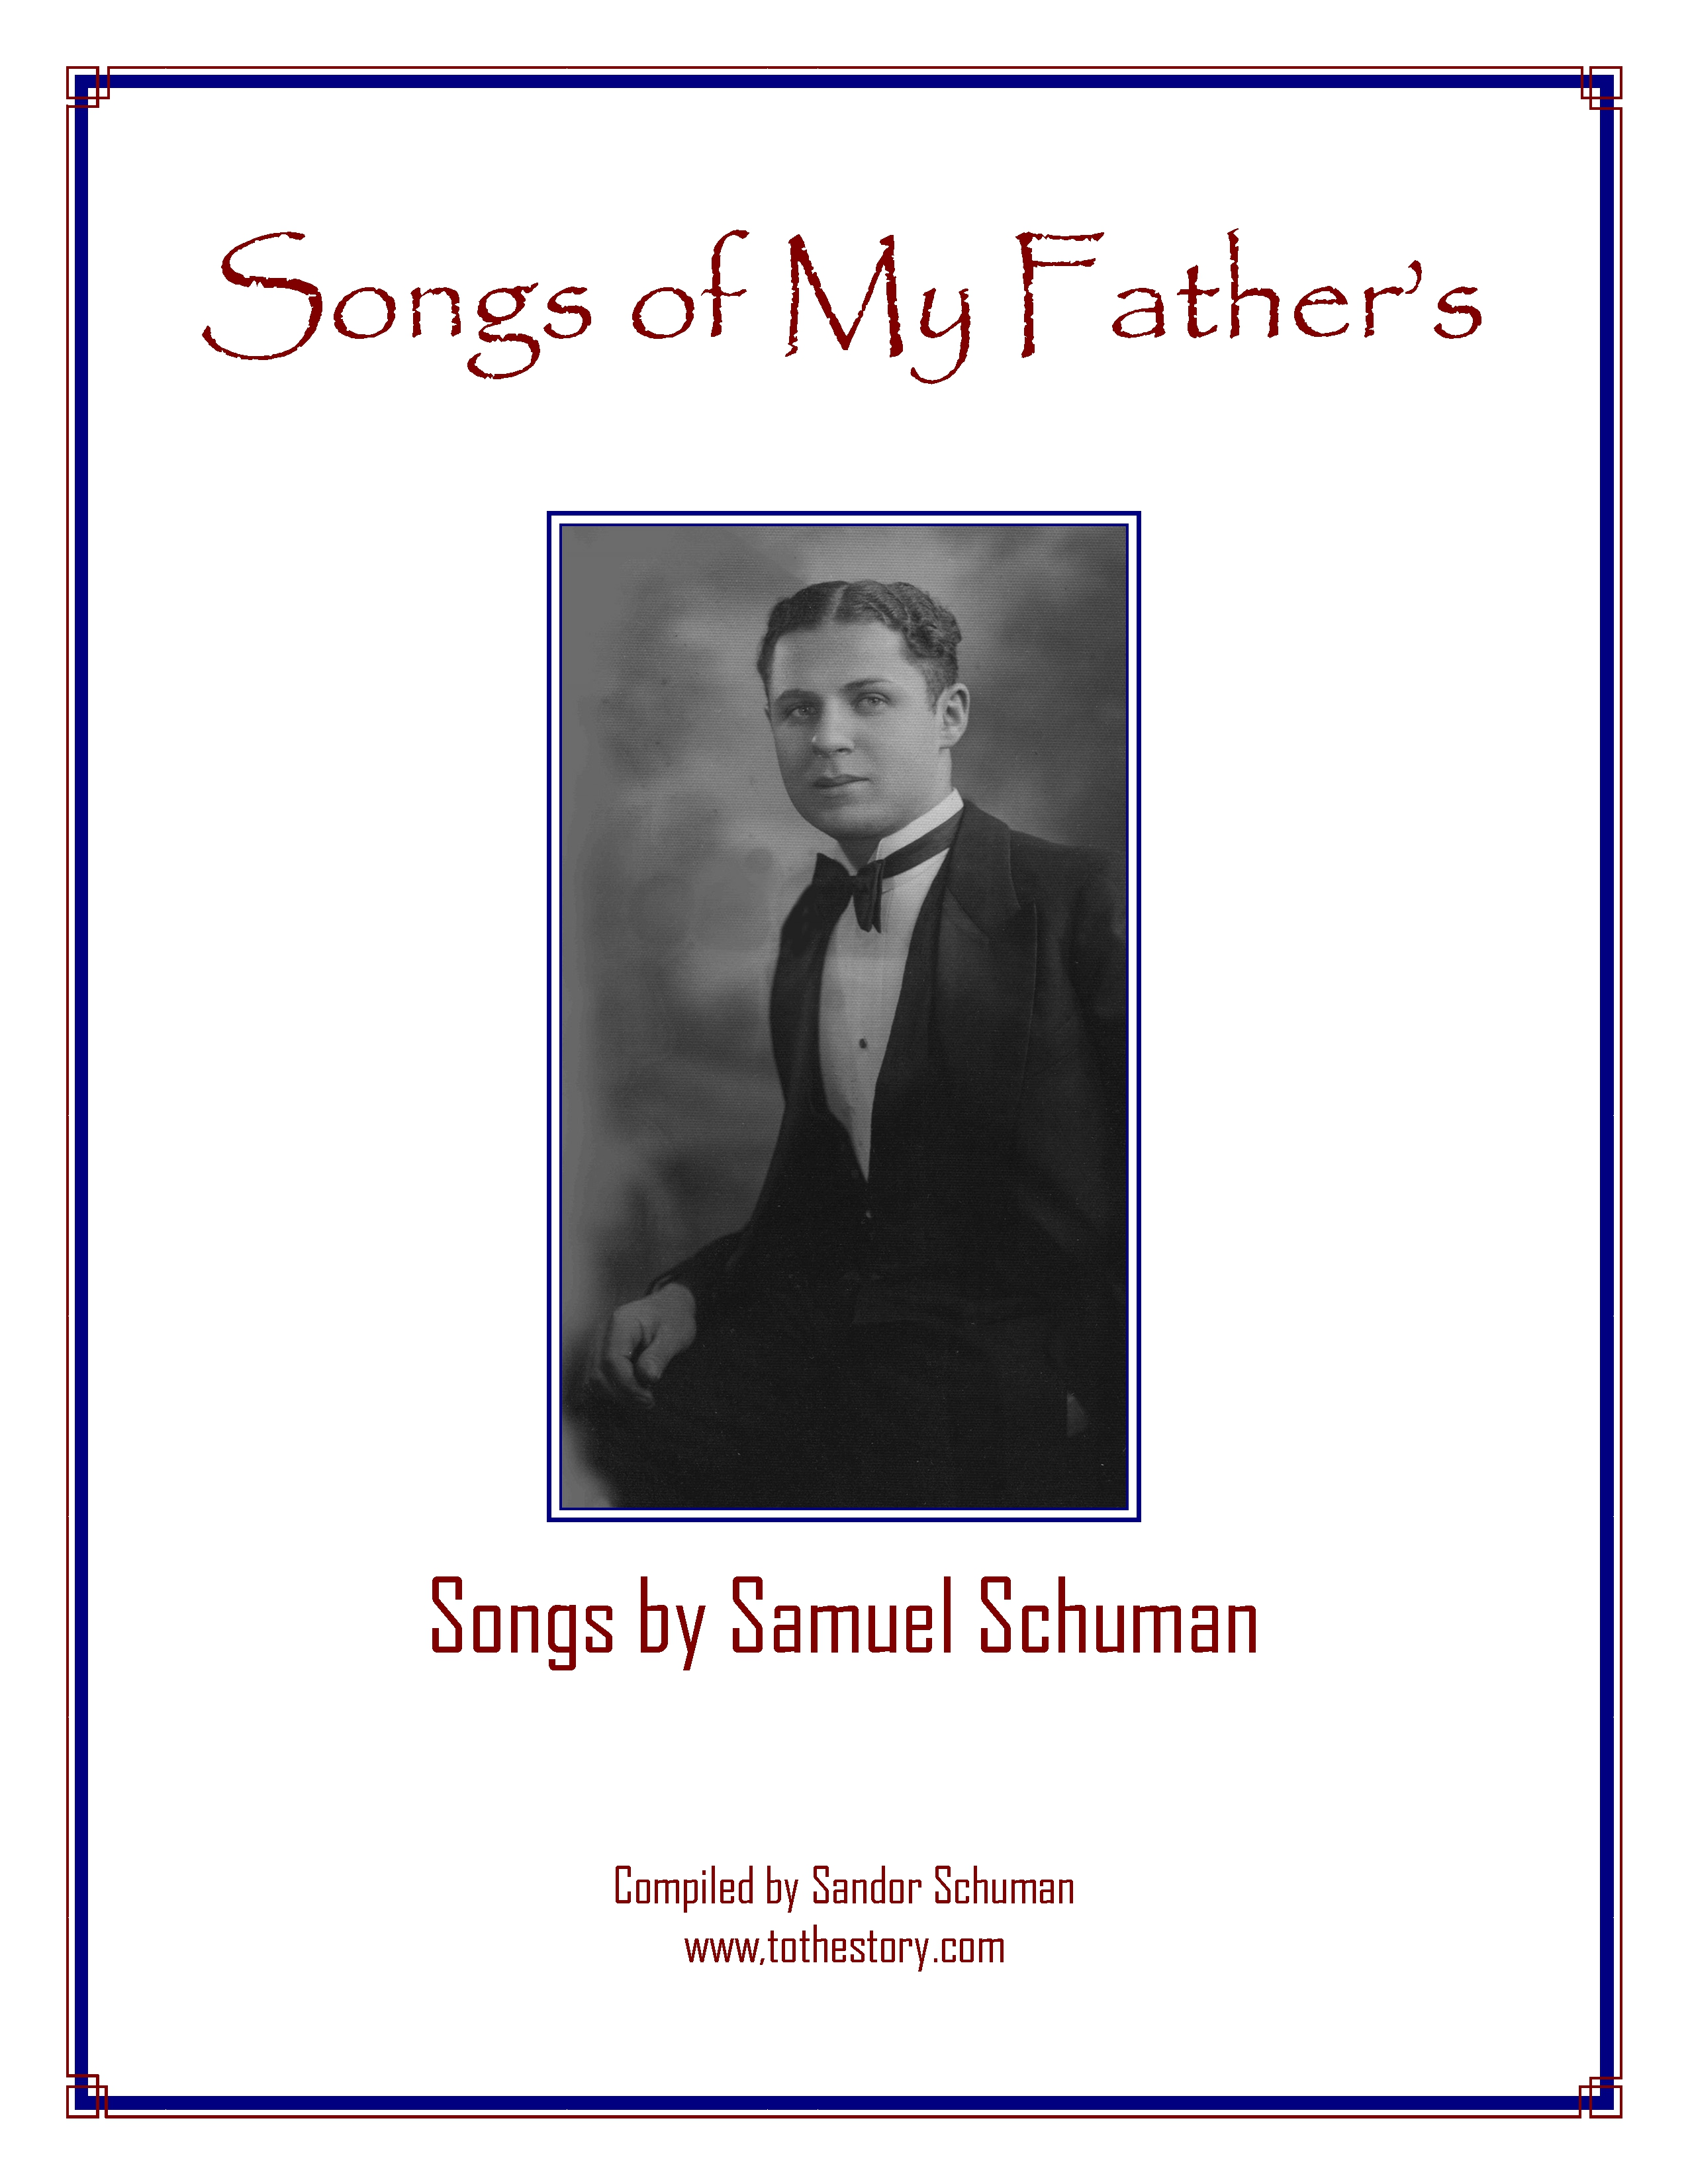 Songbook-Songs of My Father's